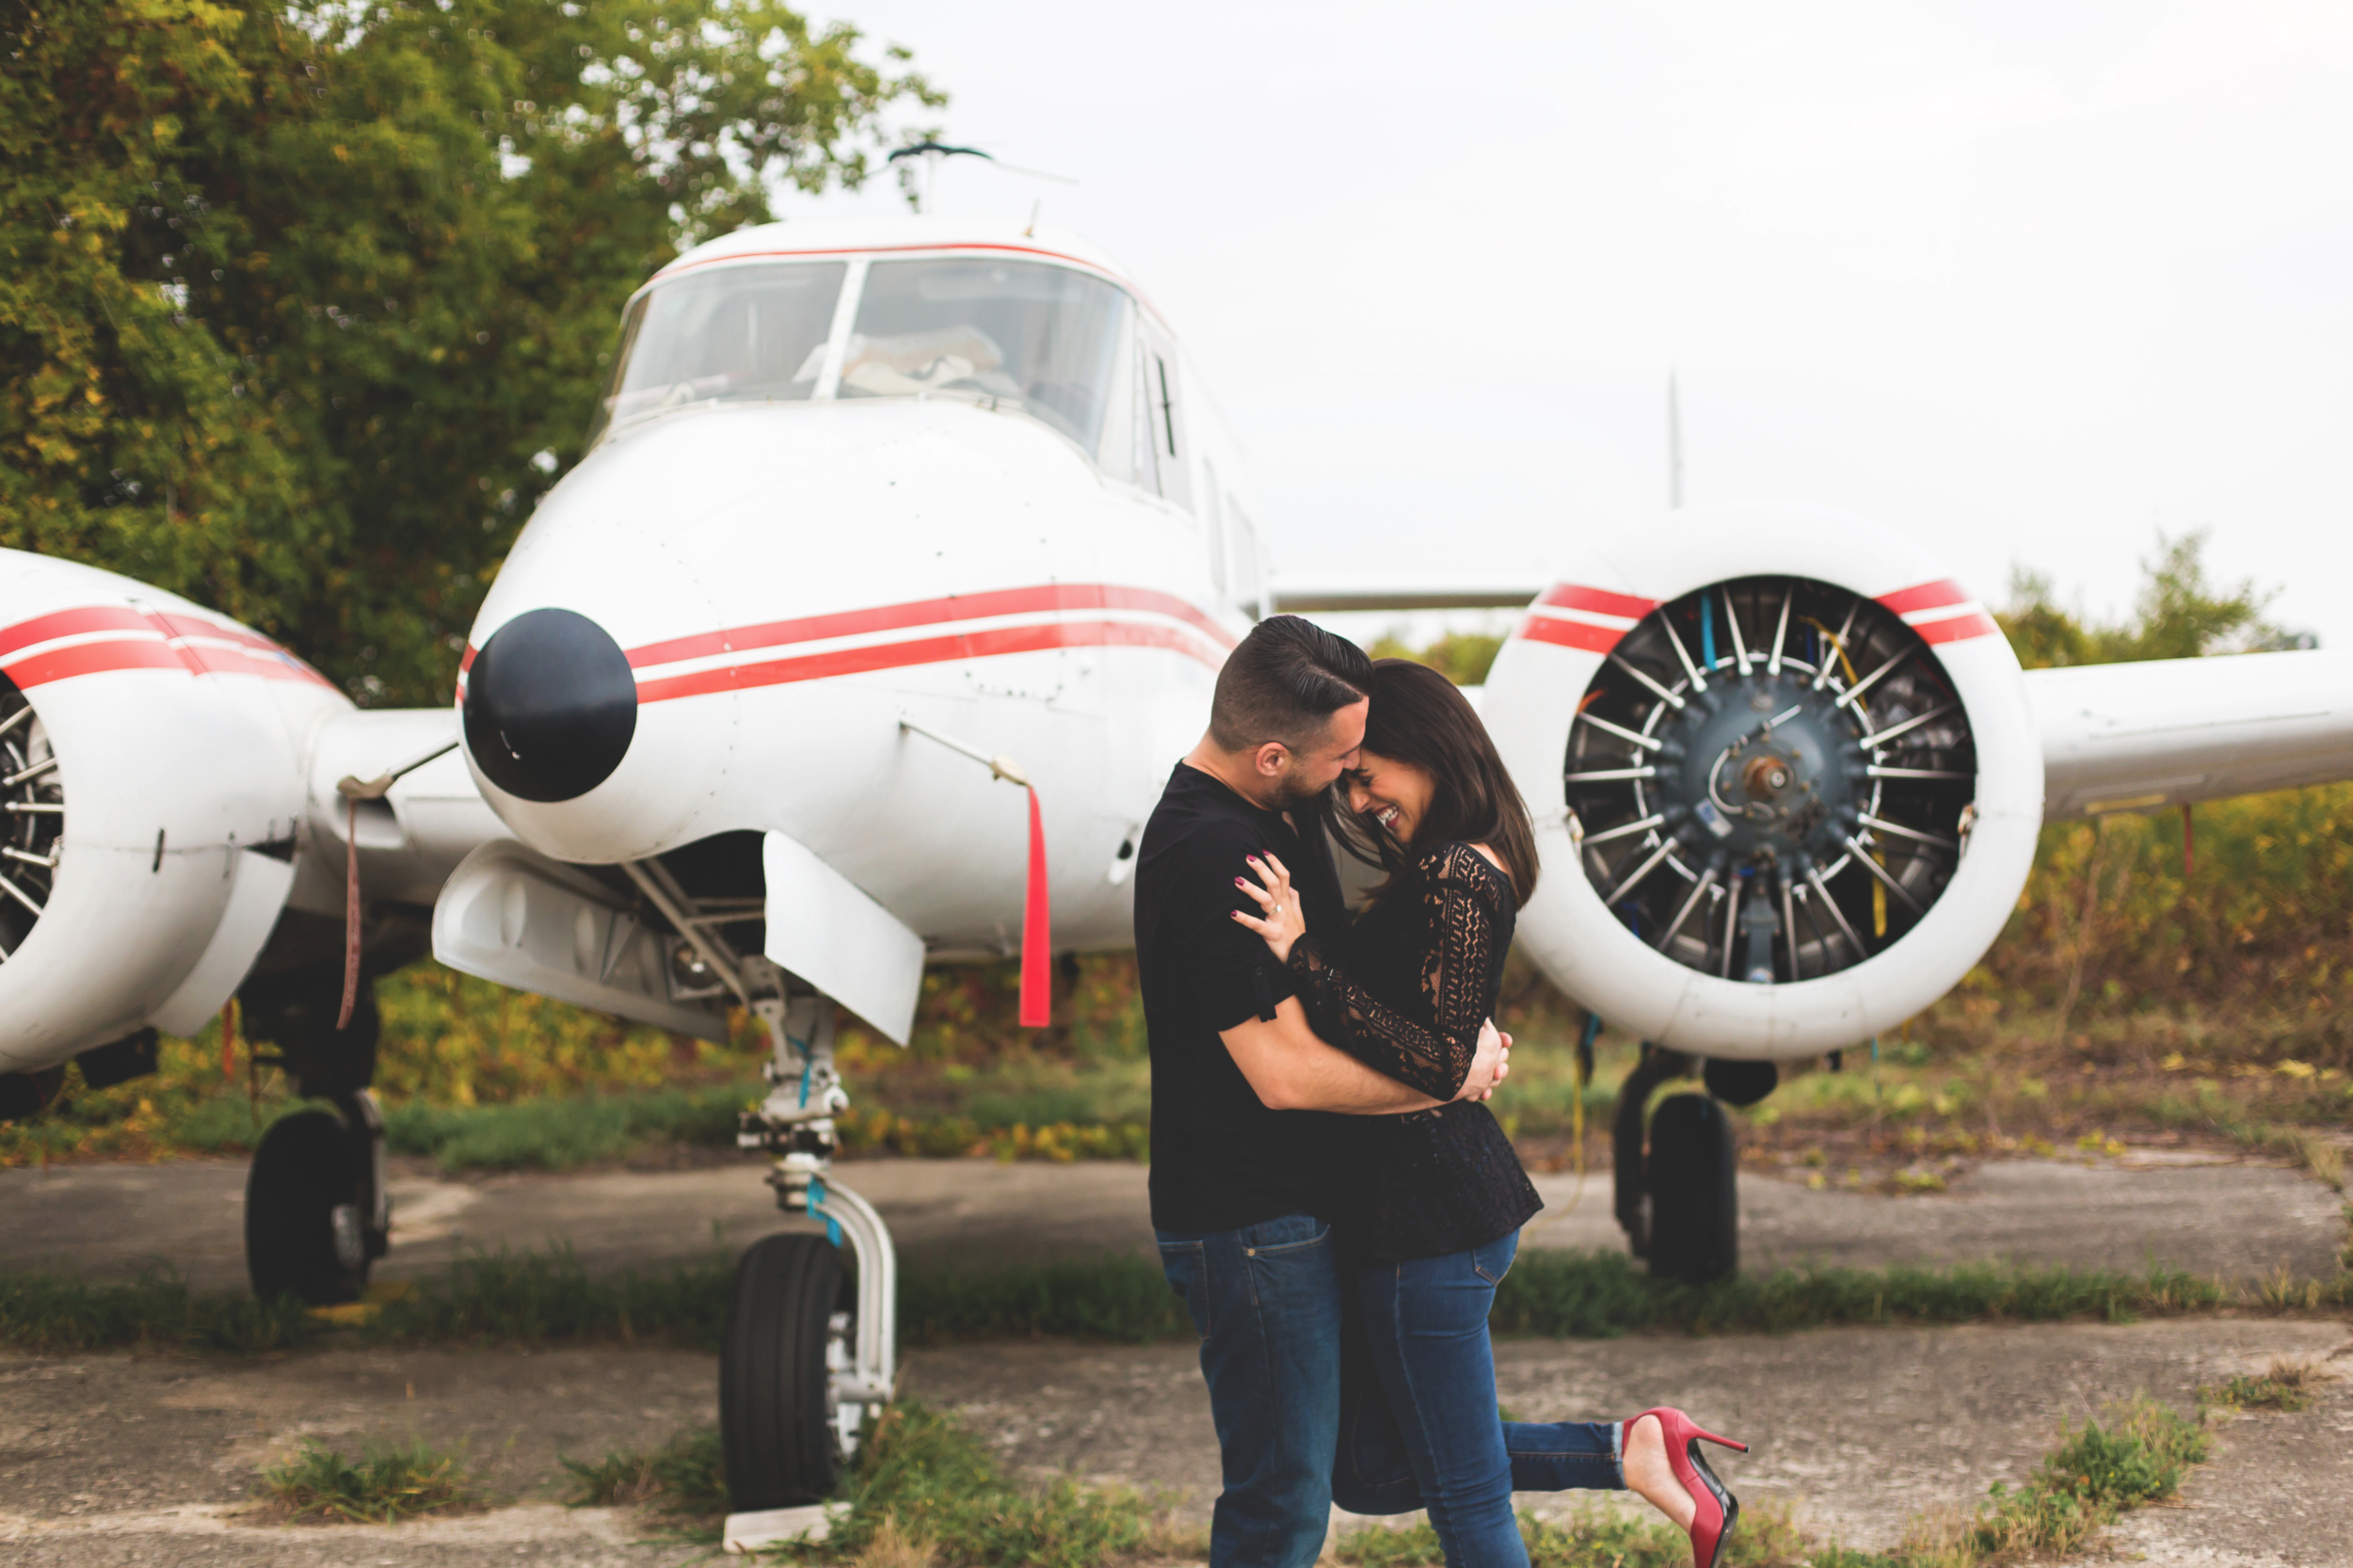 Engagement-Session-Hamilton-Burlington-Oakville-Toronto-Niagara-Wedding-Photographer-Engaged-Photography-Brantford-Airport-HamOnt-Engaged-Moments-by-Lauren-Photo-Image-2.png